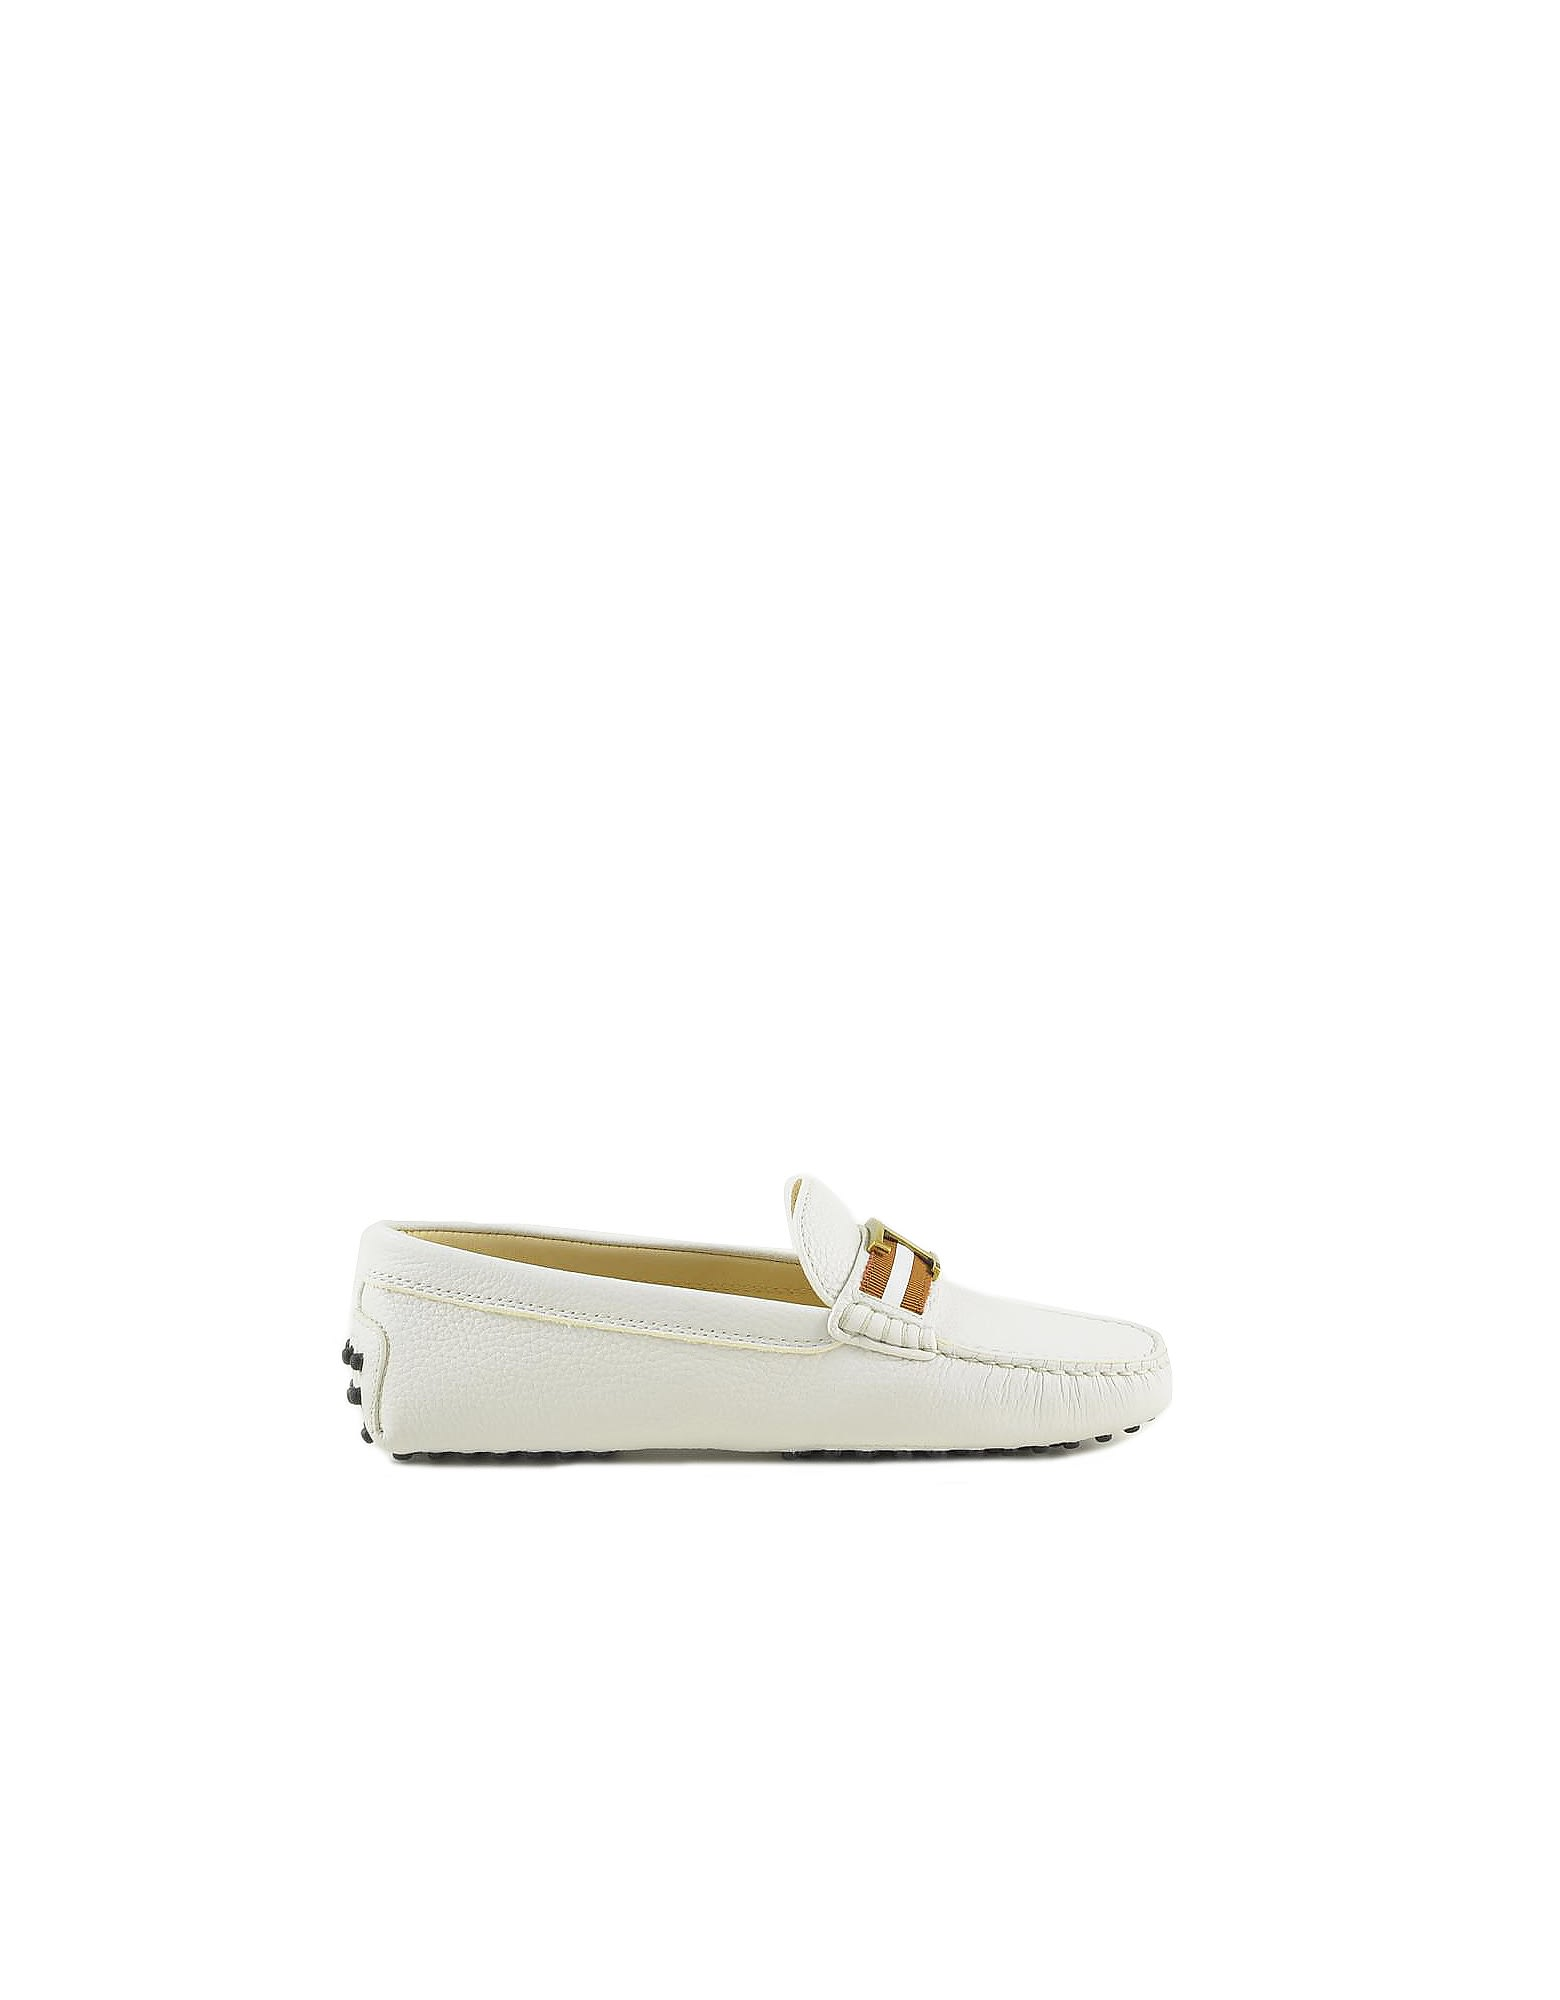 Buy Tods White Leather Loafer Shoes online, shop Tods shoes with free shipping